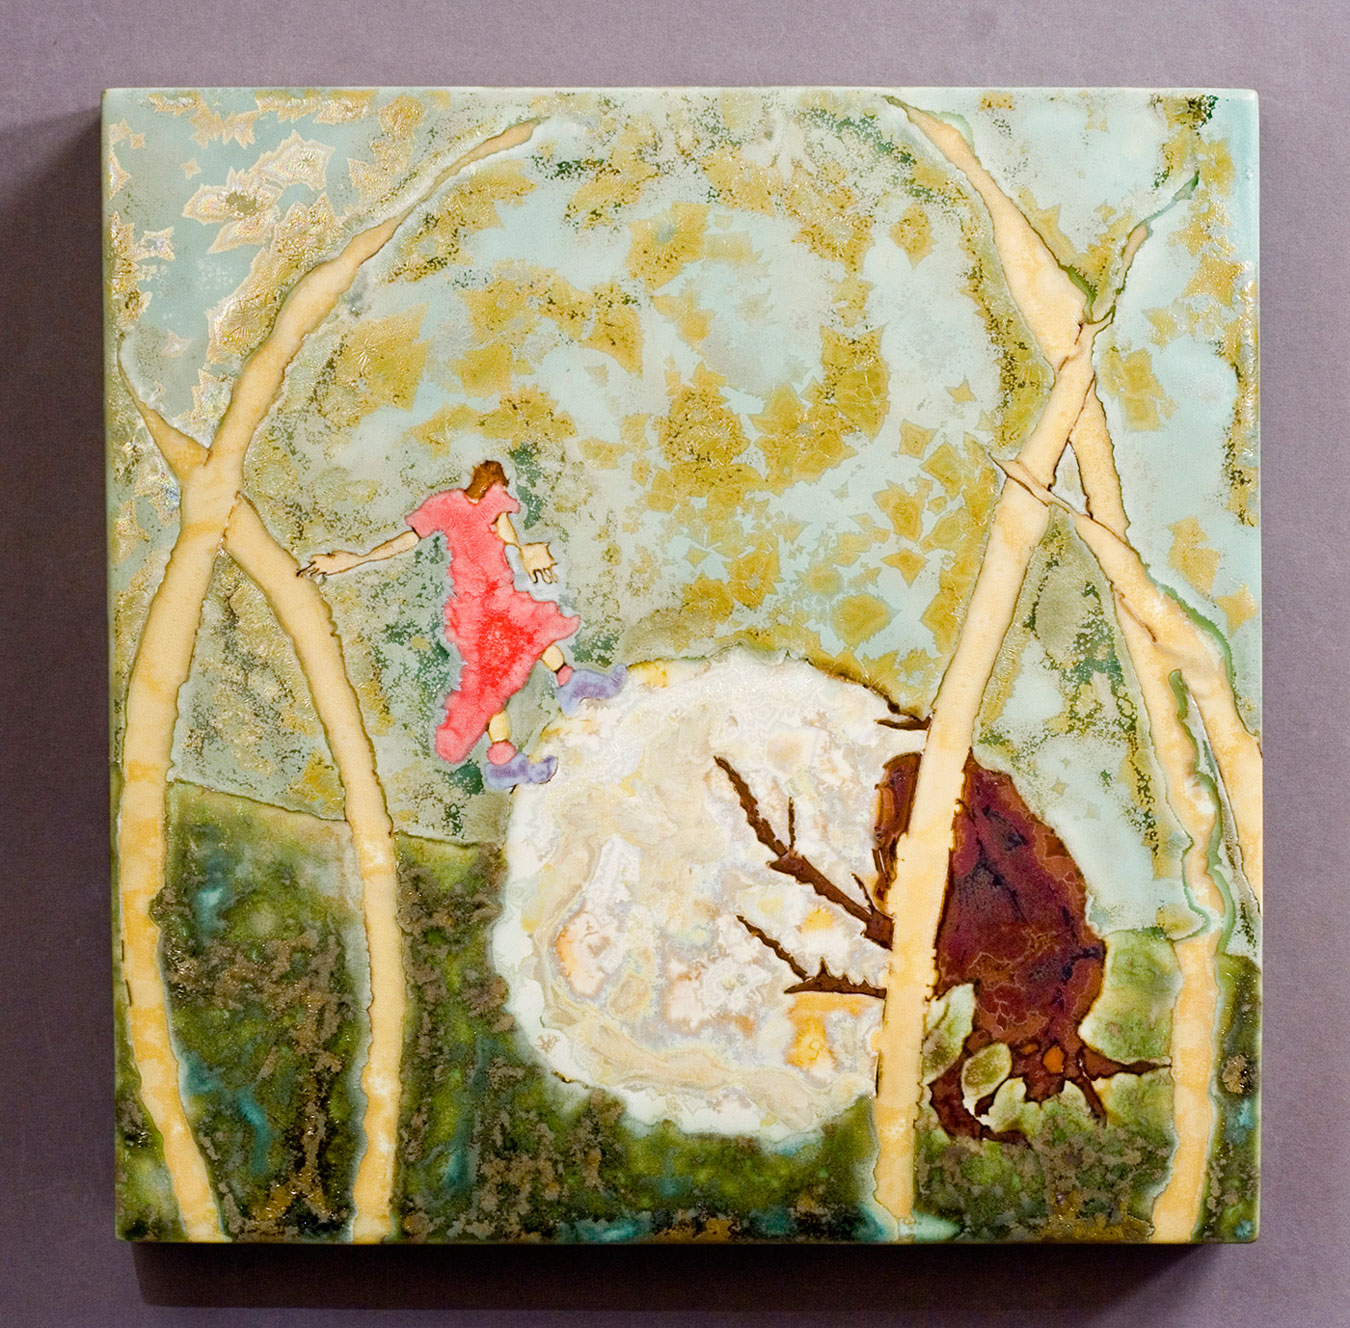 Focal-Point-Ceramic-Art-Painting-Samantha-Henneke.jpg